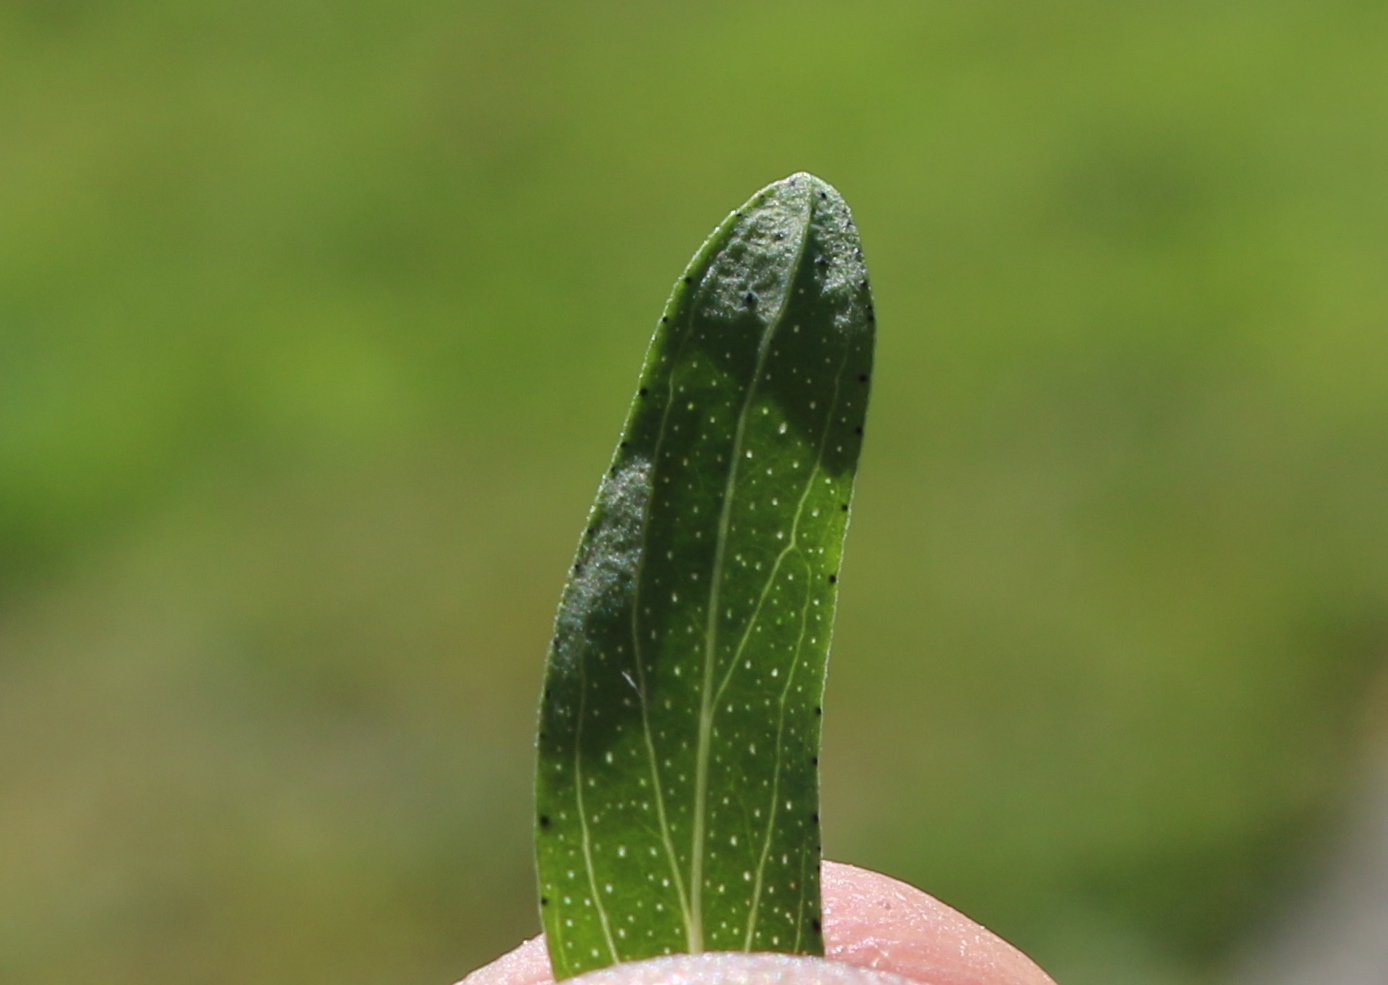 Notice the transparent holes in the leaf